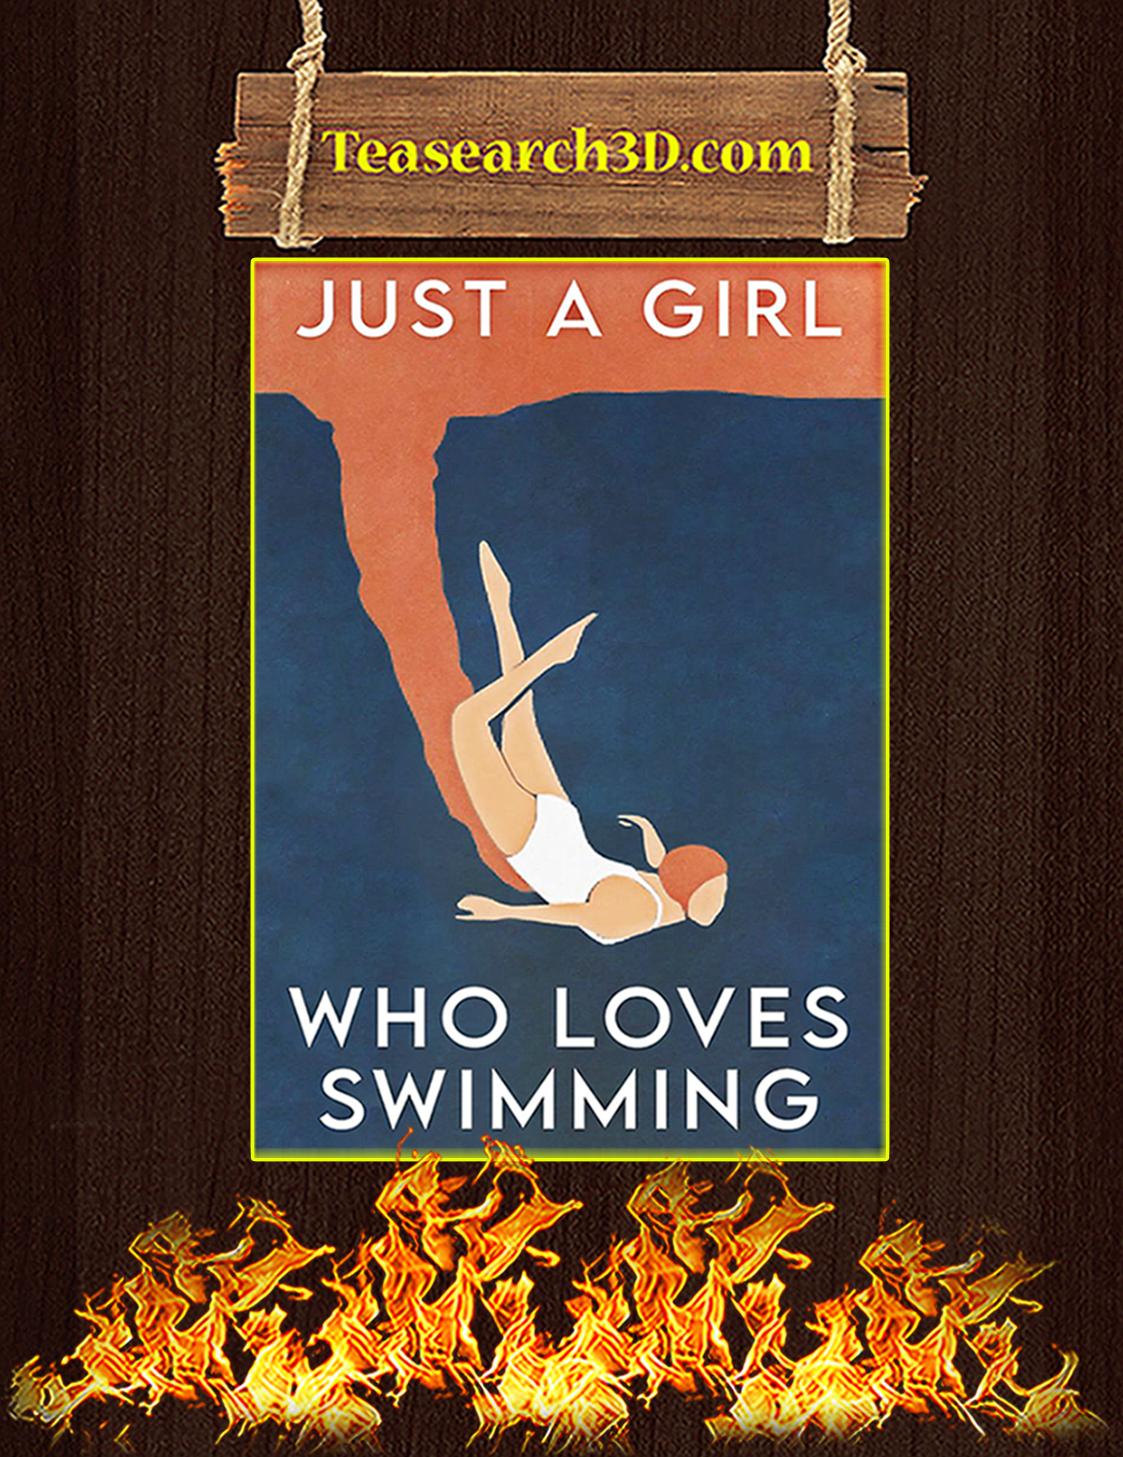 Just a girl who loves swimming poster A3